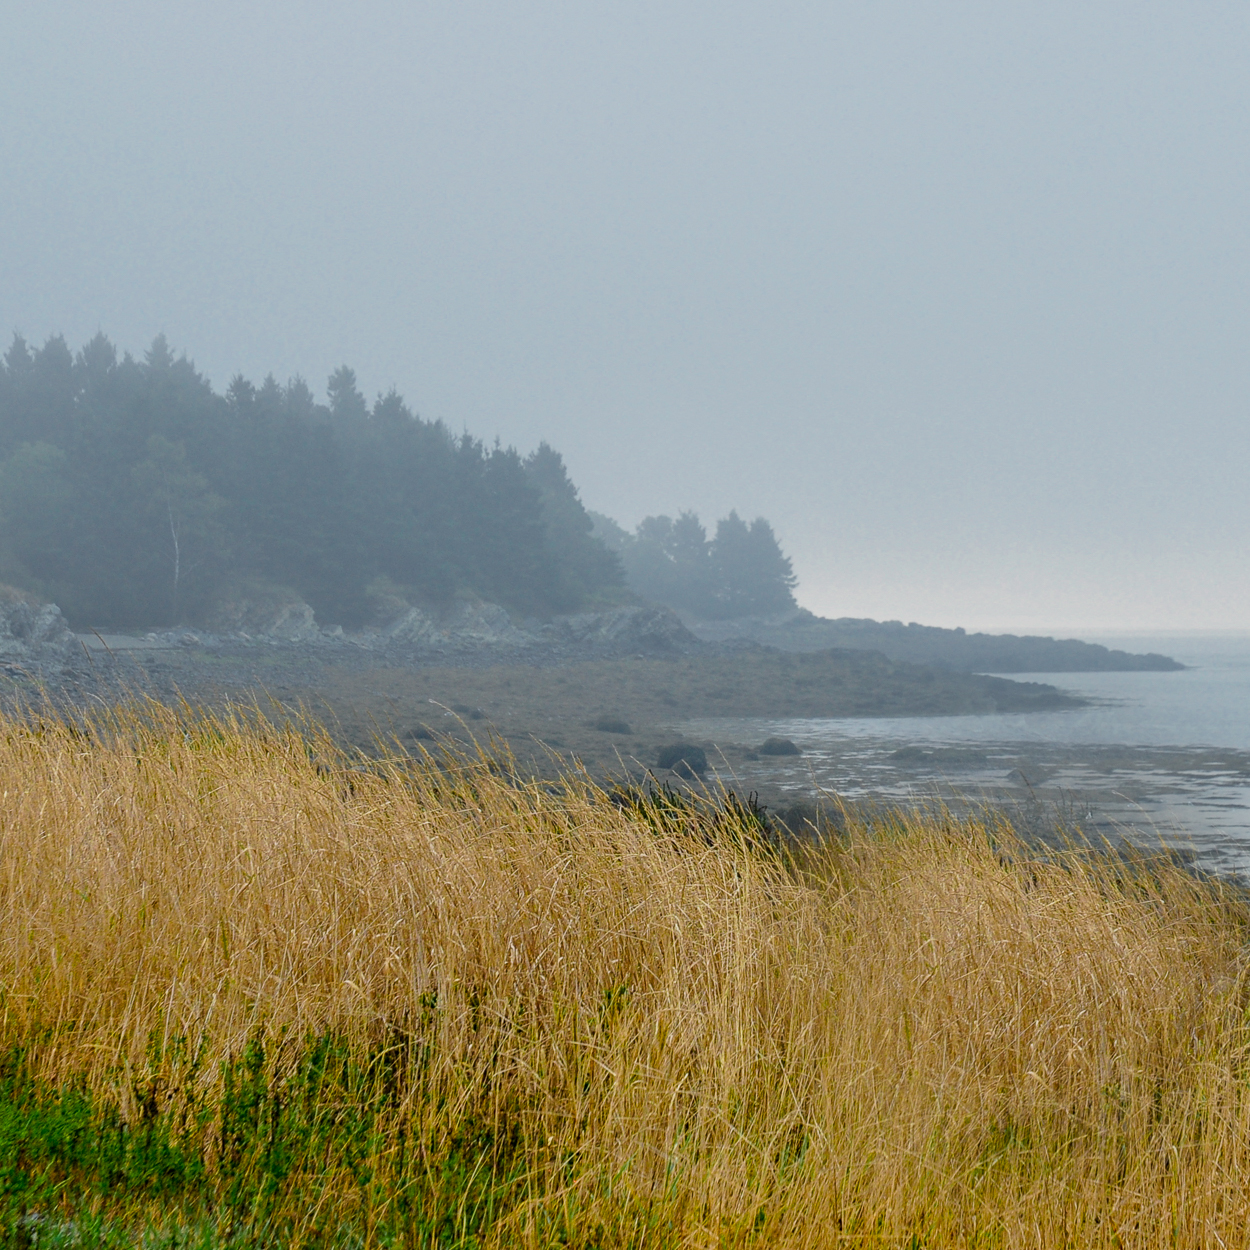 Foggy Morning - Cobscook Bay, Maine